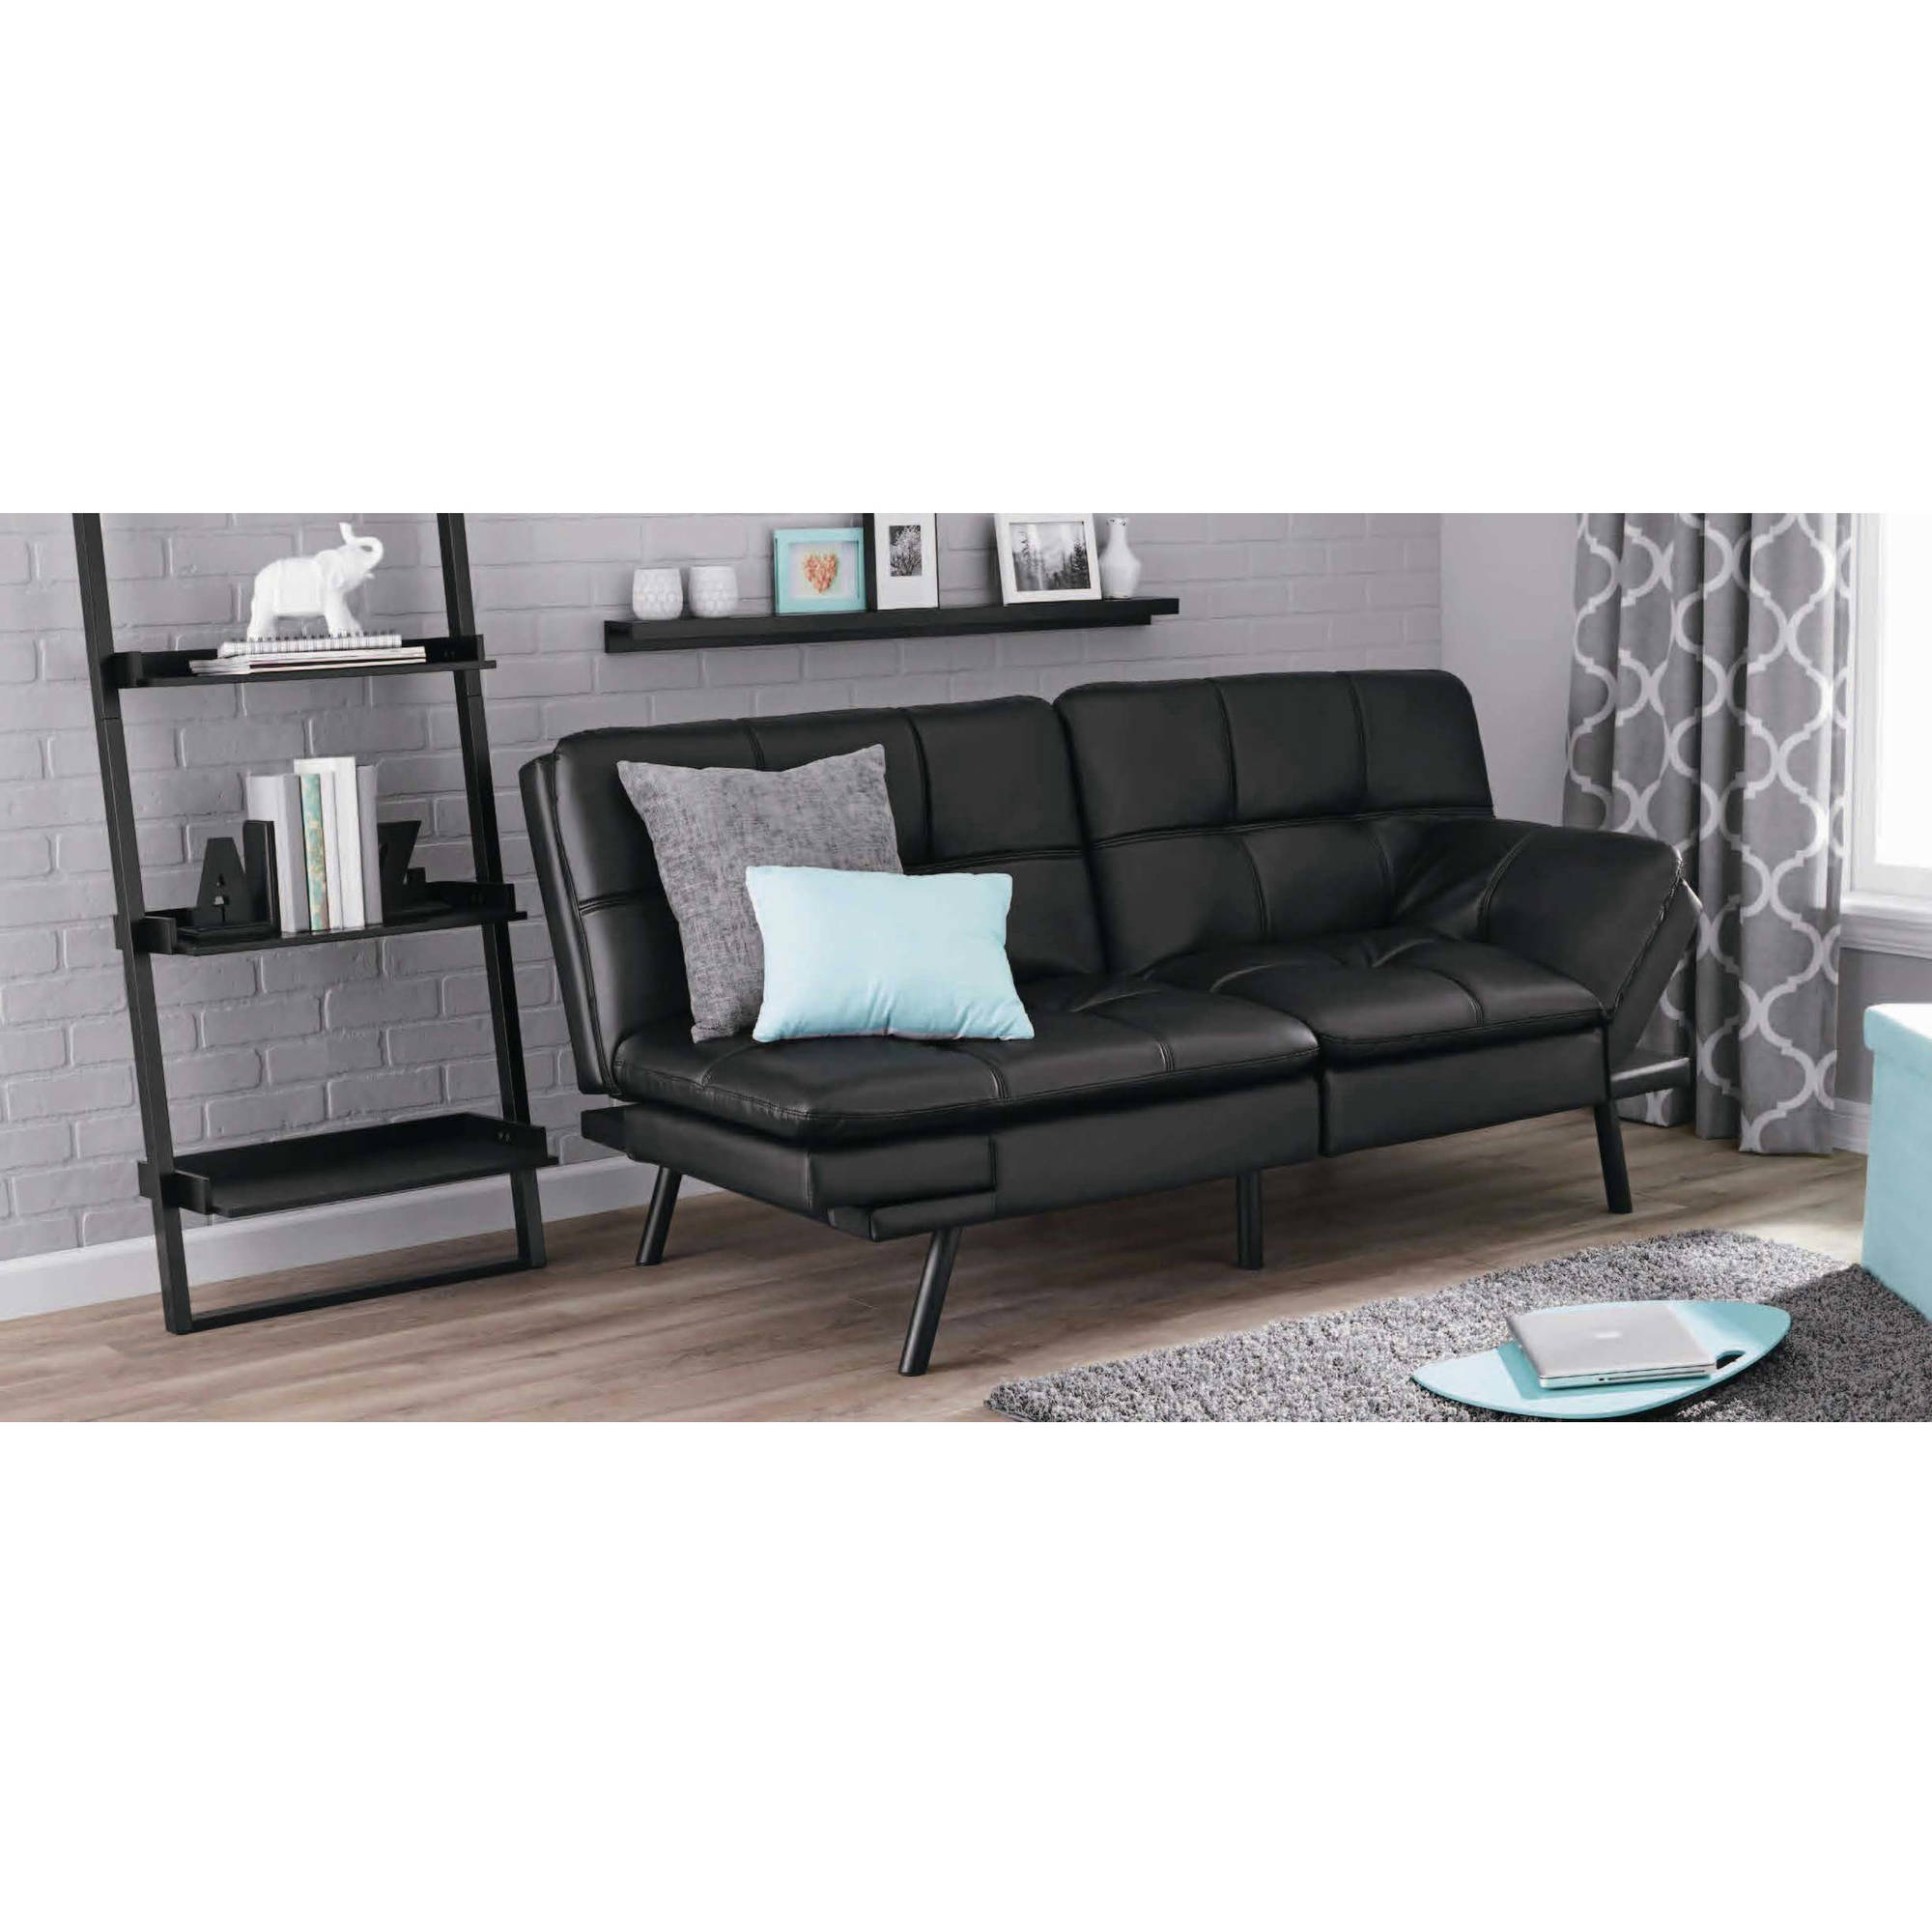 Mainstays Memory Foam Mattress Black Faux Leather Futon Arm Rest